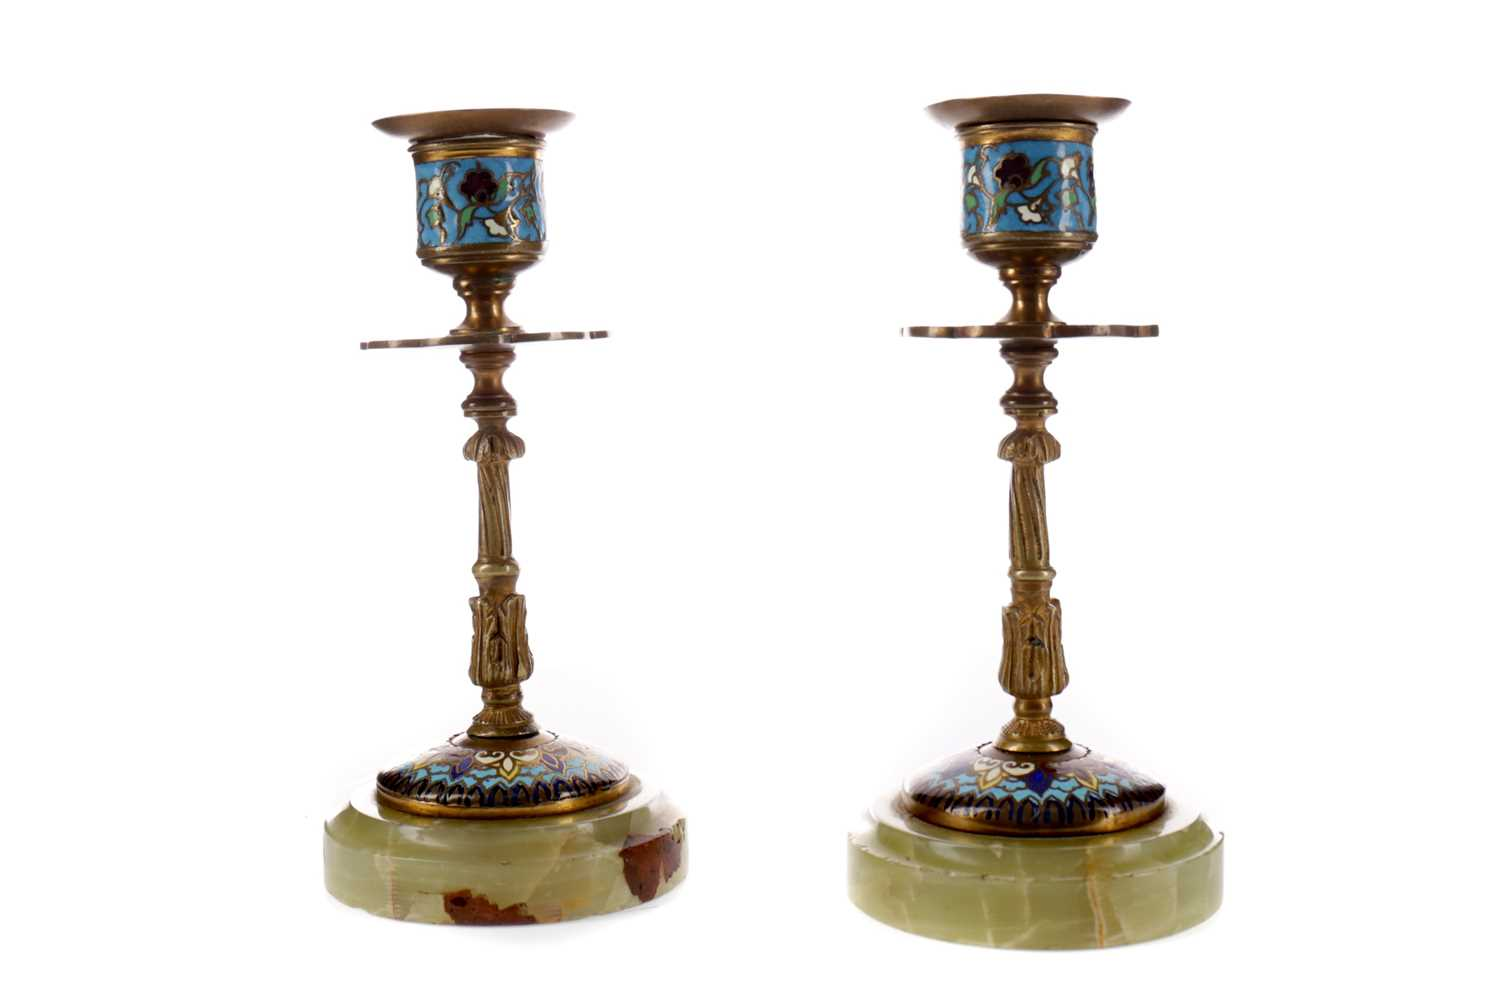 Lot 63 - A PAIR OF LATE 19TH CENTURY BRASS AND CHAMPLEVÉ ENAMEL CANDLESTICKS